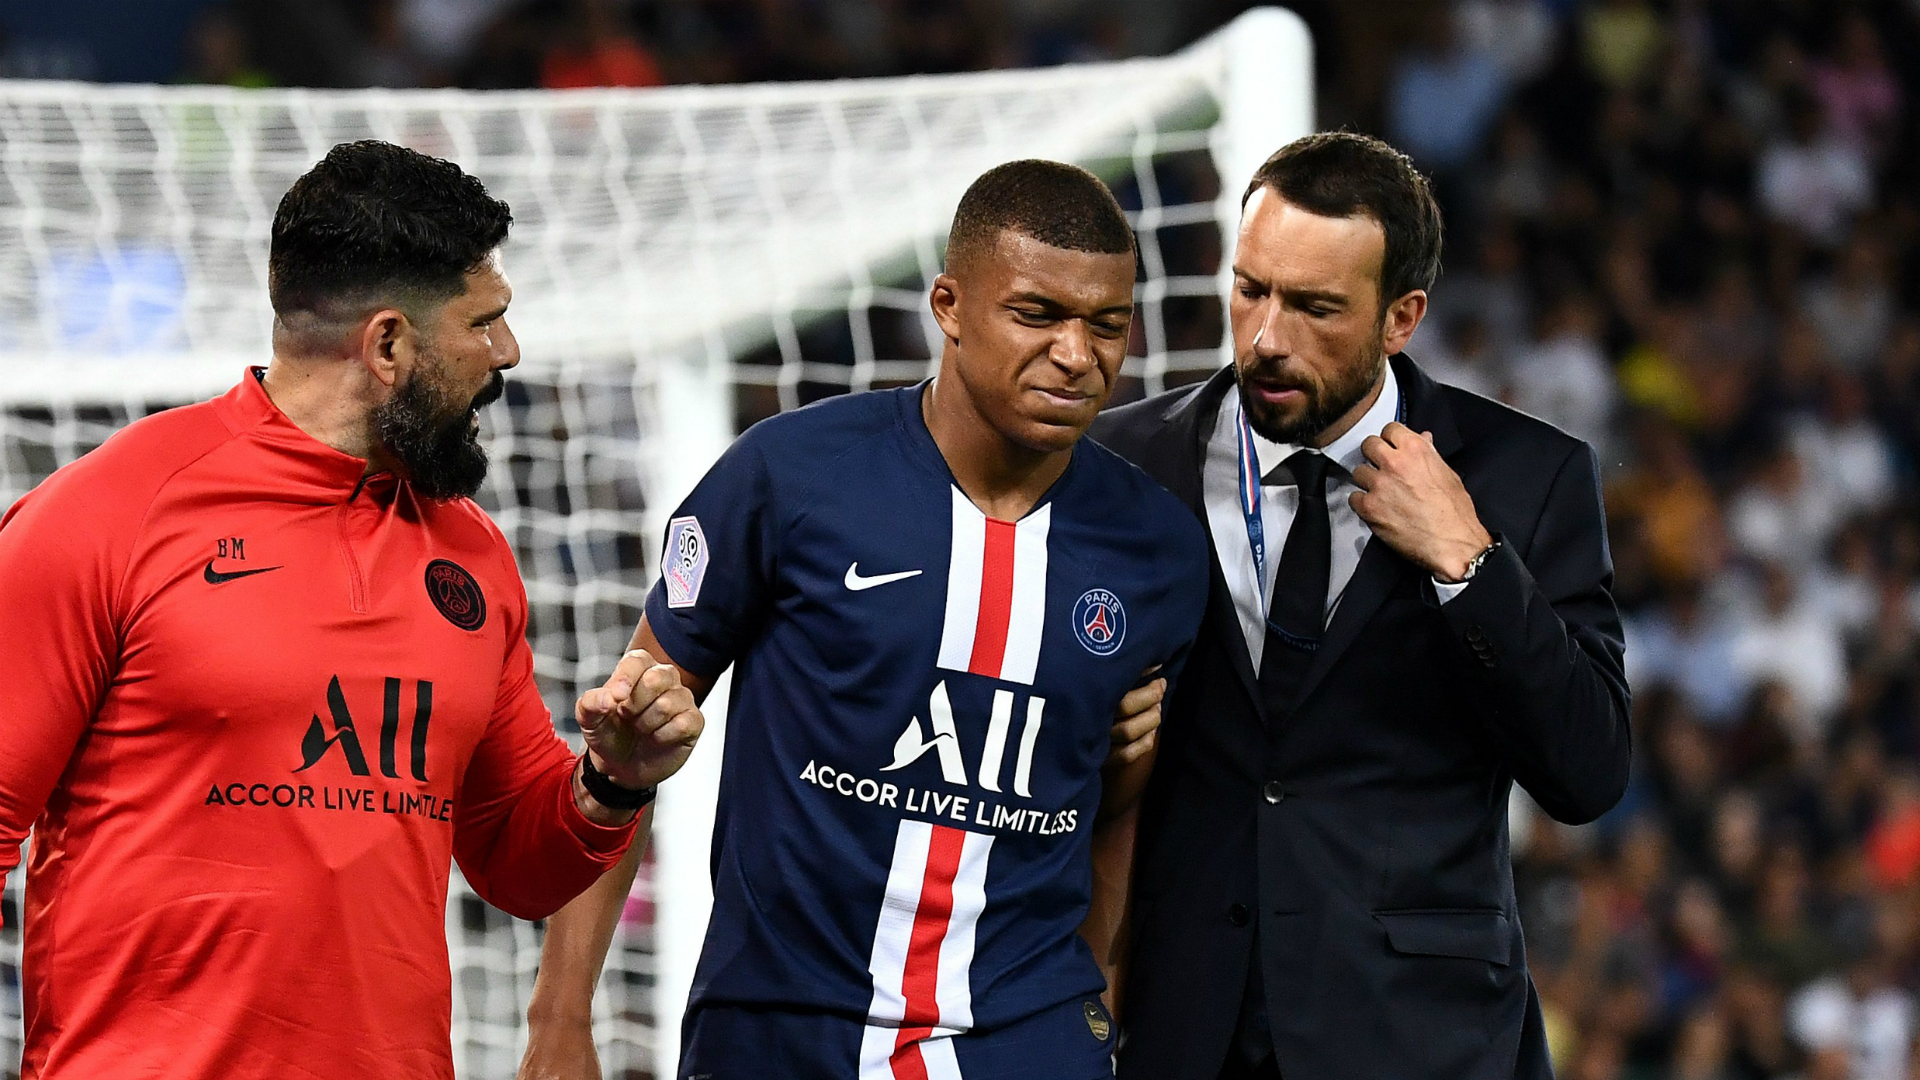 Neymar's future remains unresolved but injuries to Edinson Cavani and Kylian Mbappe could affect PSG's decision.